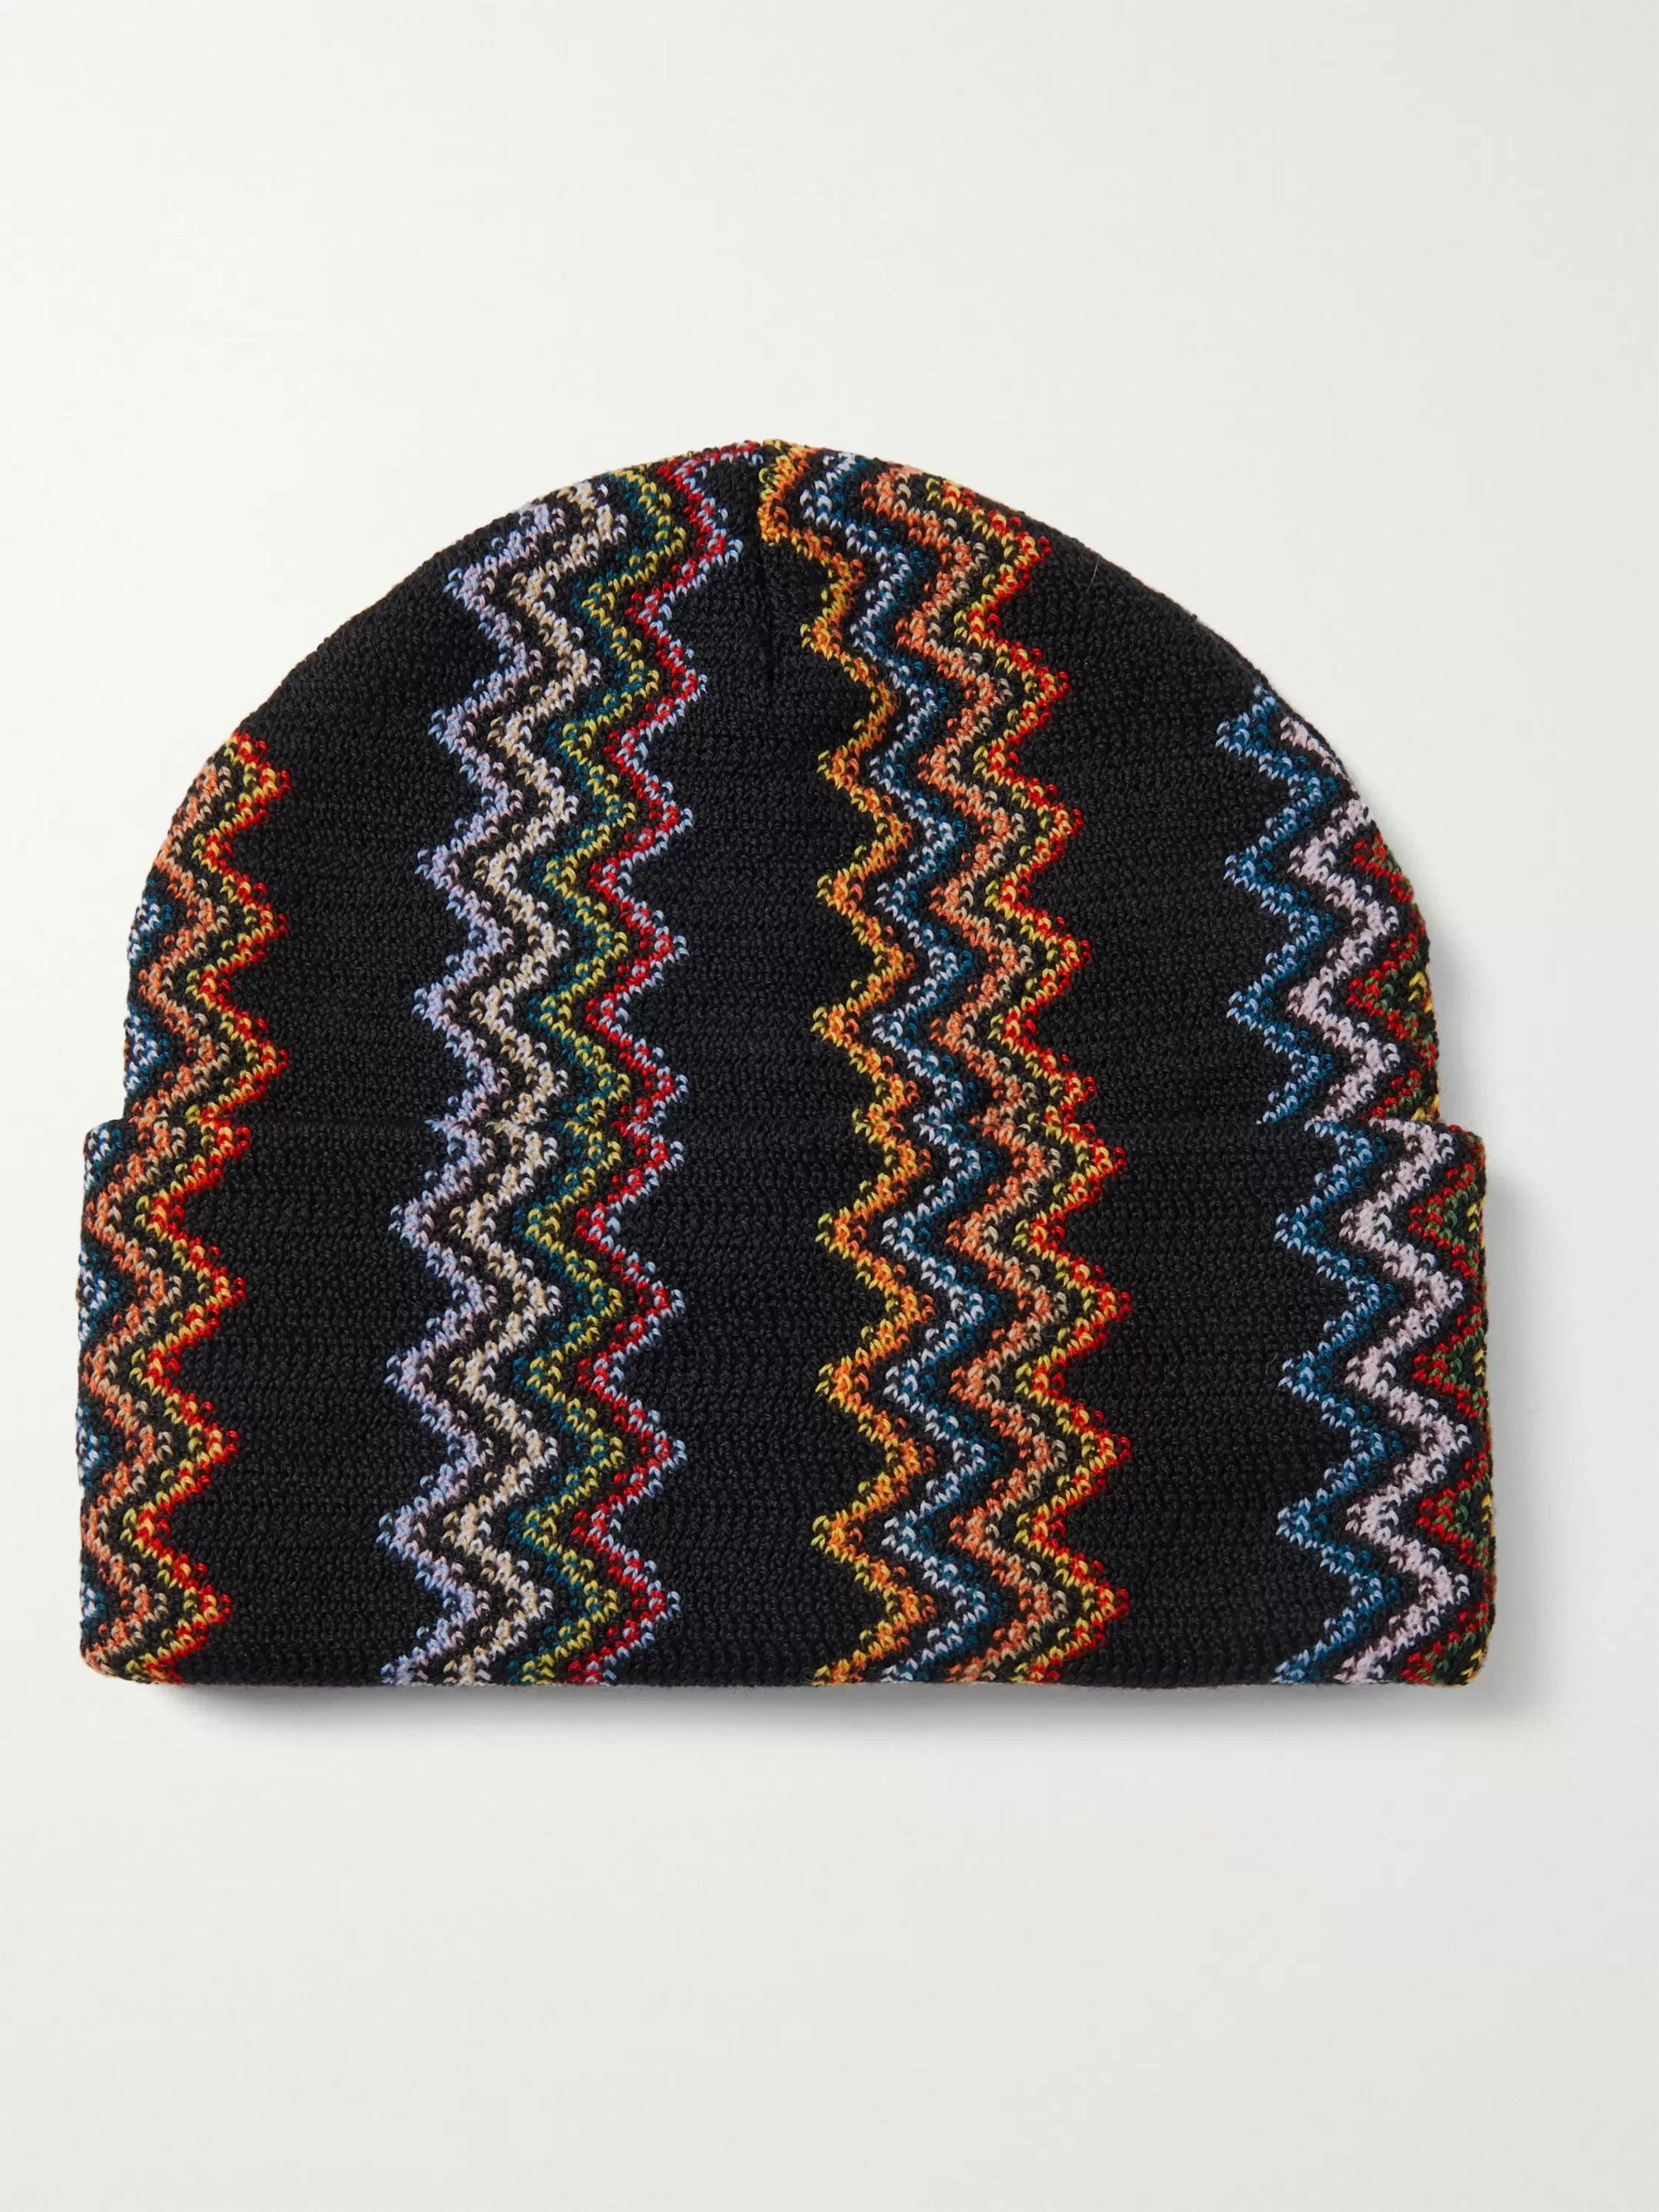 Missoni Crochet-Knit Wool Beanie